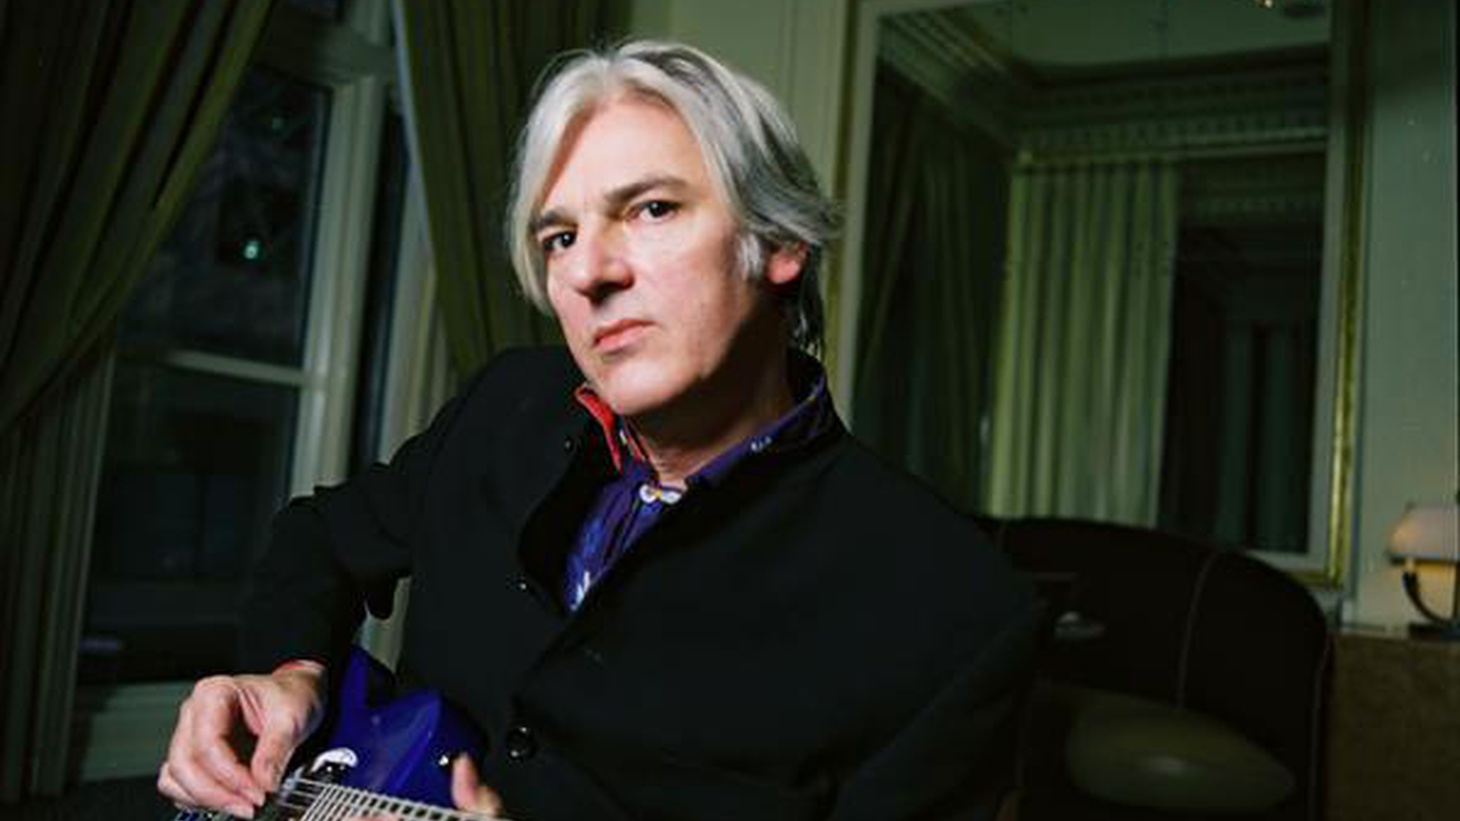 ...from Goodnight Oslo.   Raconteur and musician Robyn Hitchcock recently joined us. His new release has him revisiting the past in a positive light while reinventing himself...